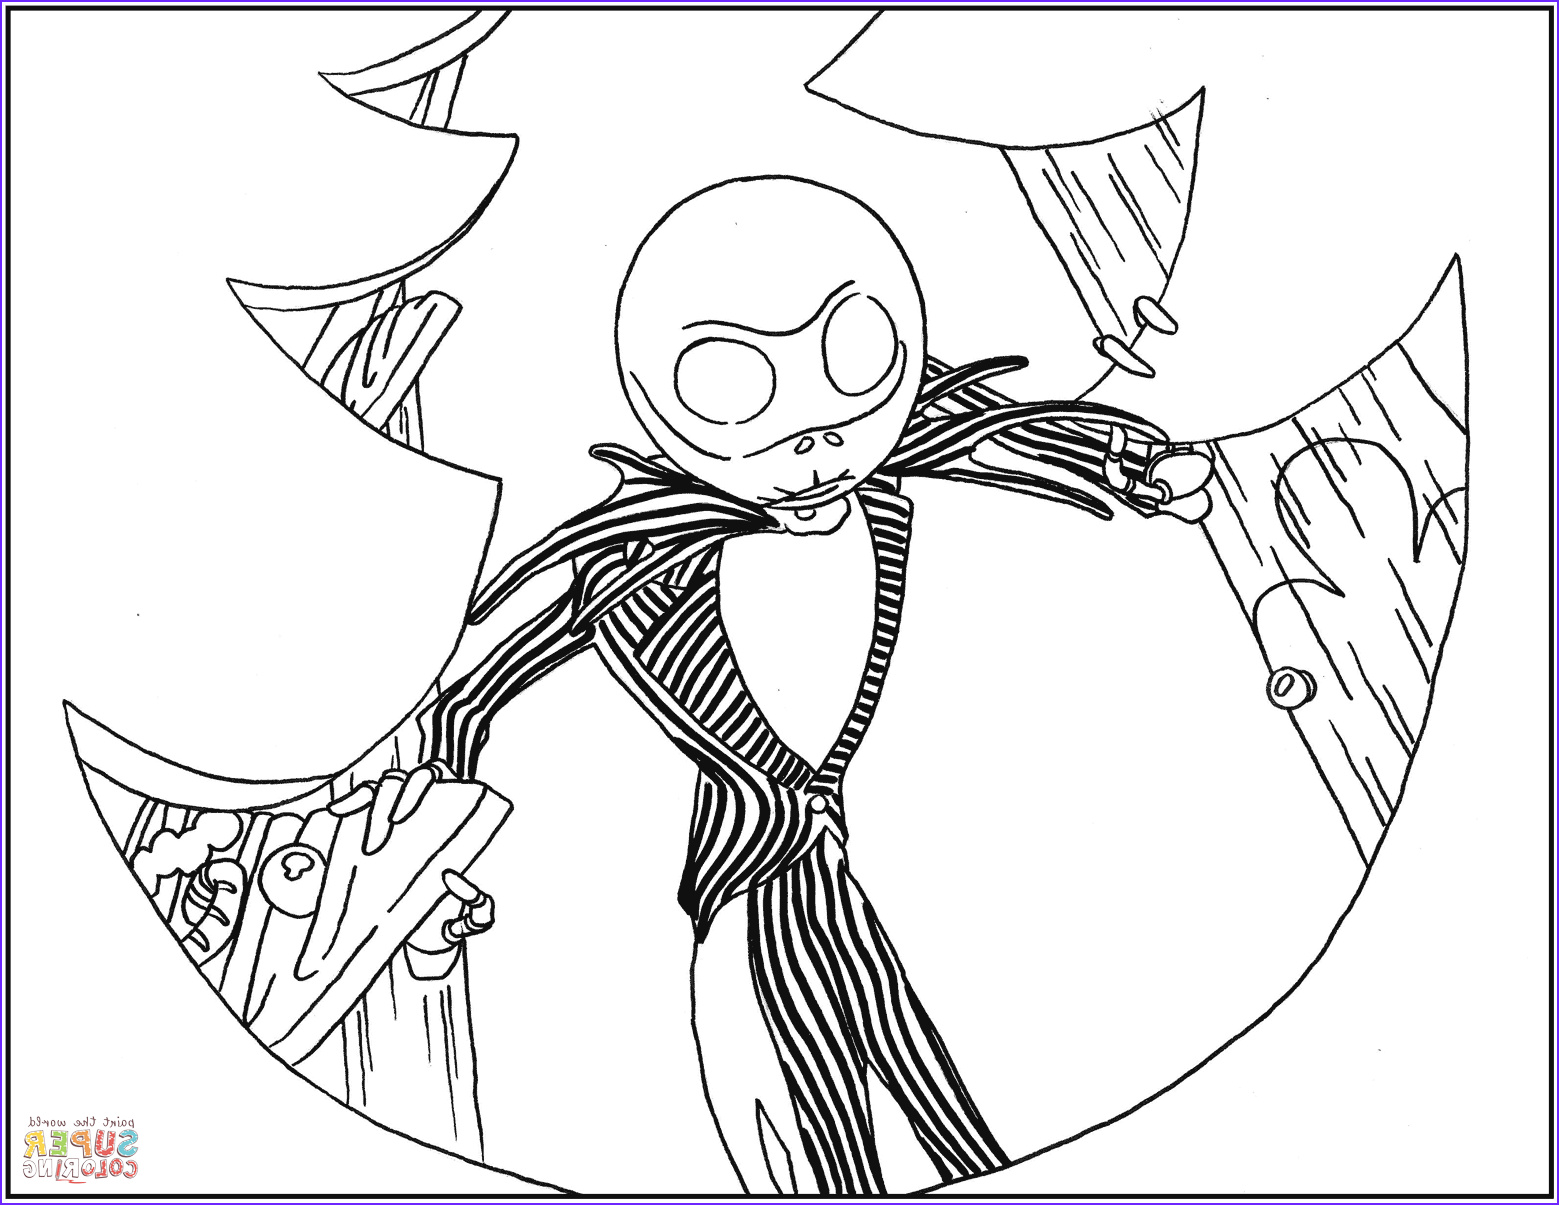 Nightmare before Christmas Coloring Pages Cool Photos Jack Skellington From Nightmare before Christmas Coloring